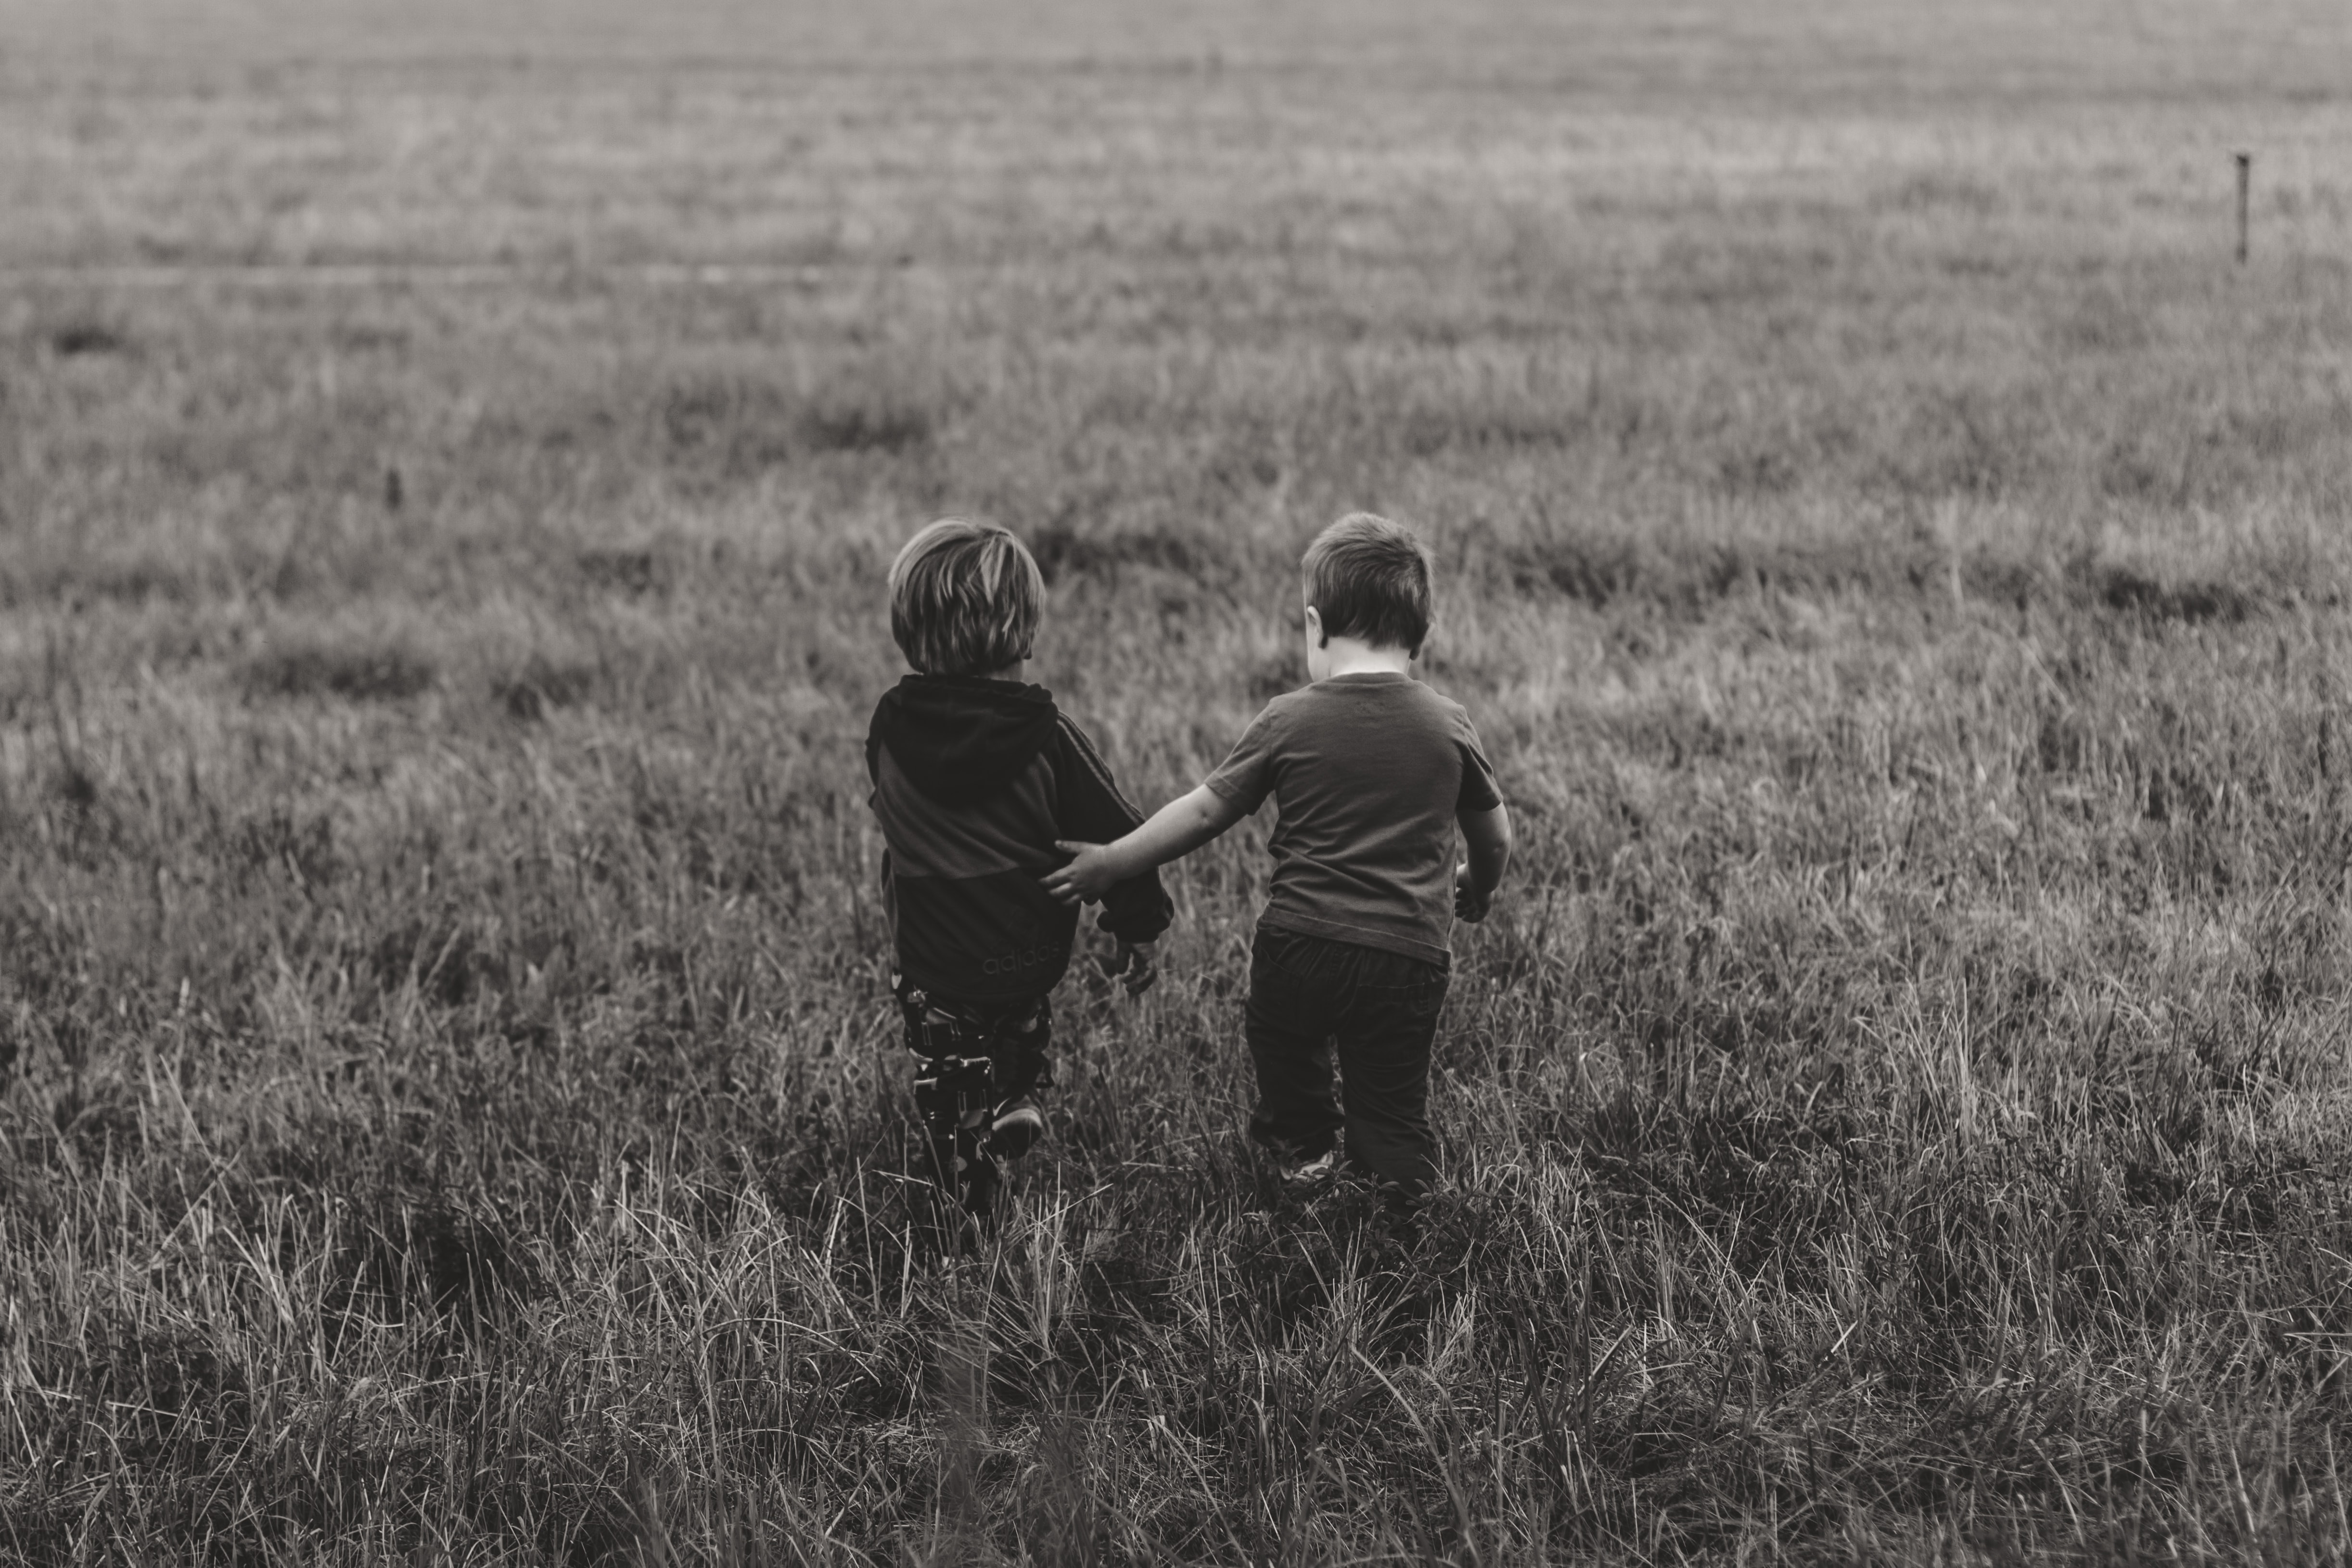 Two children walk arm in arm away from camera in black and white photo